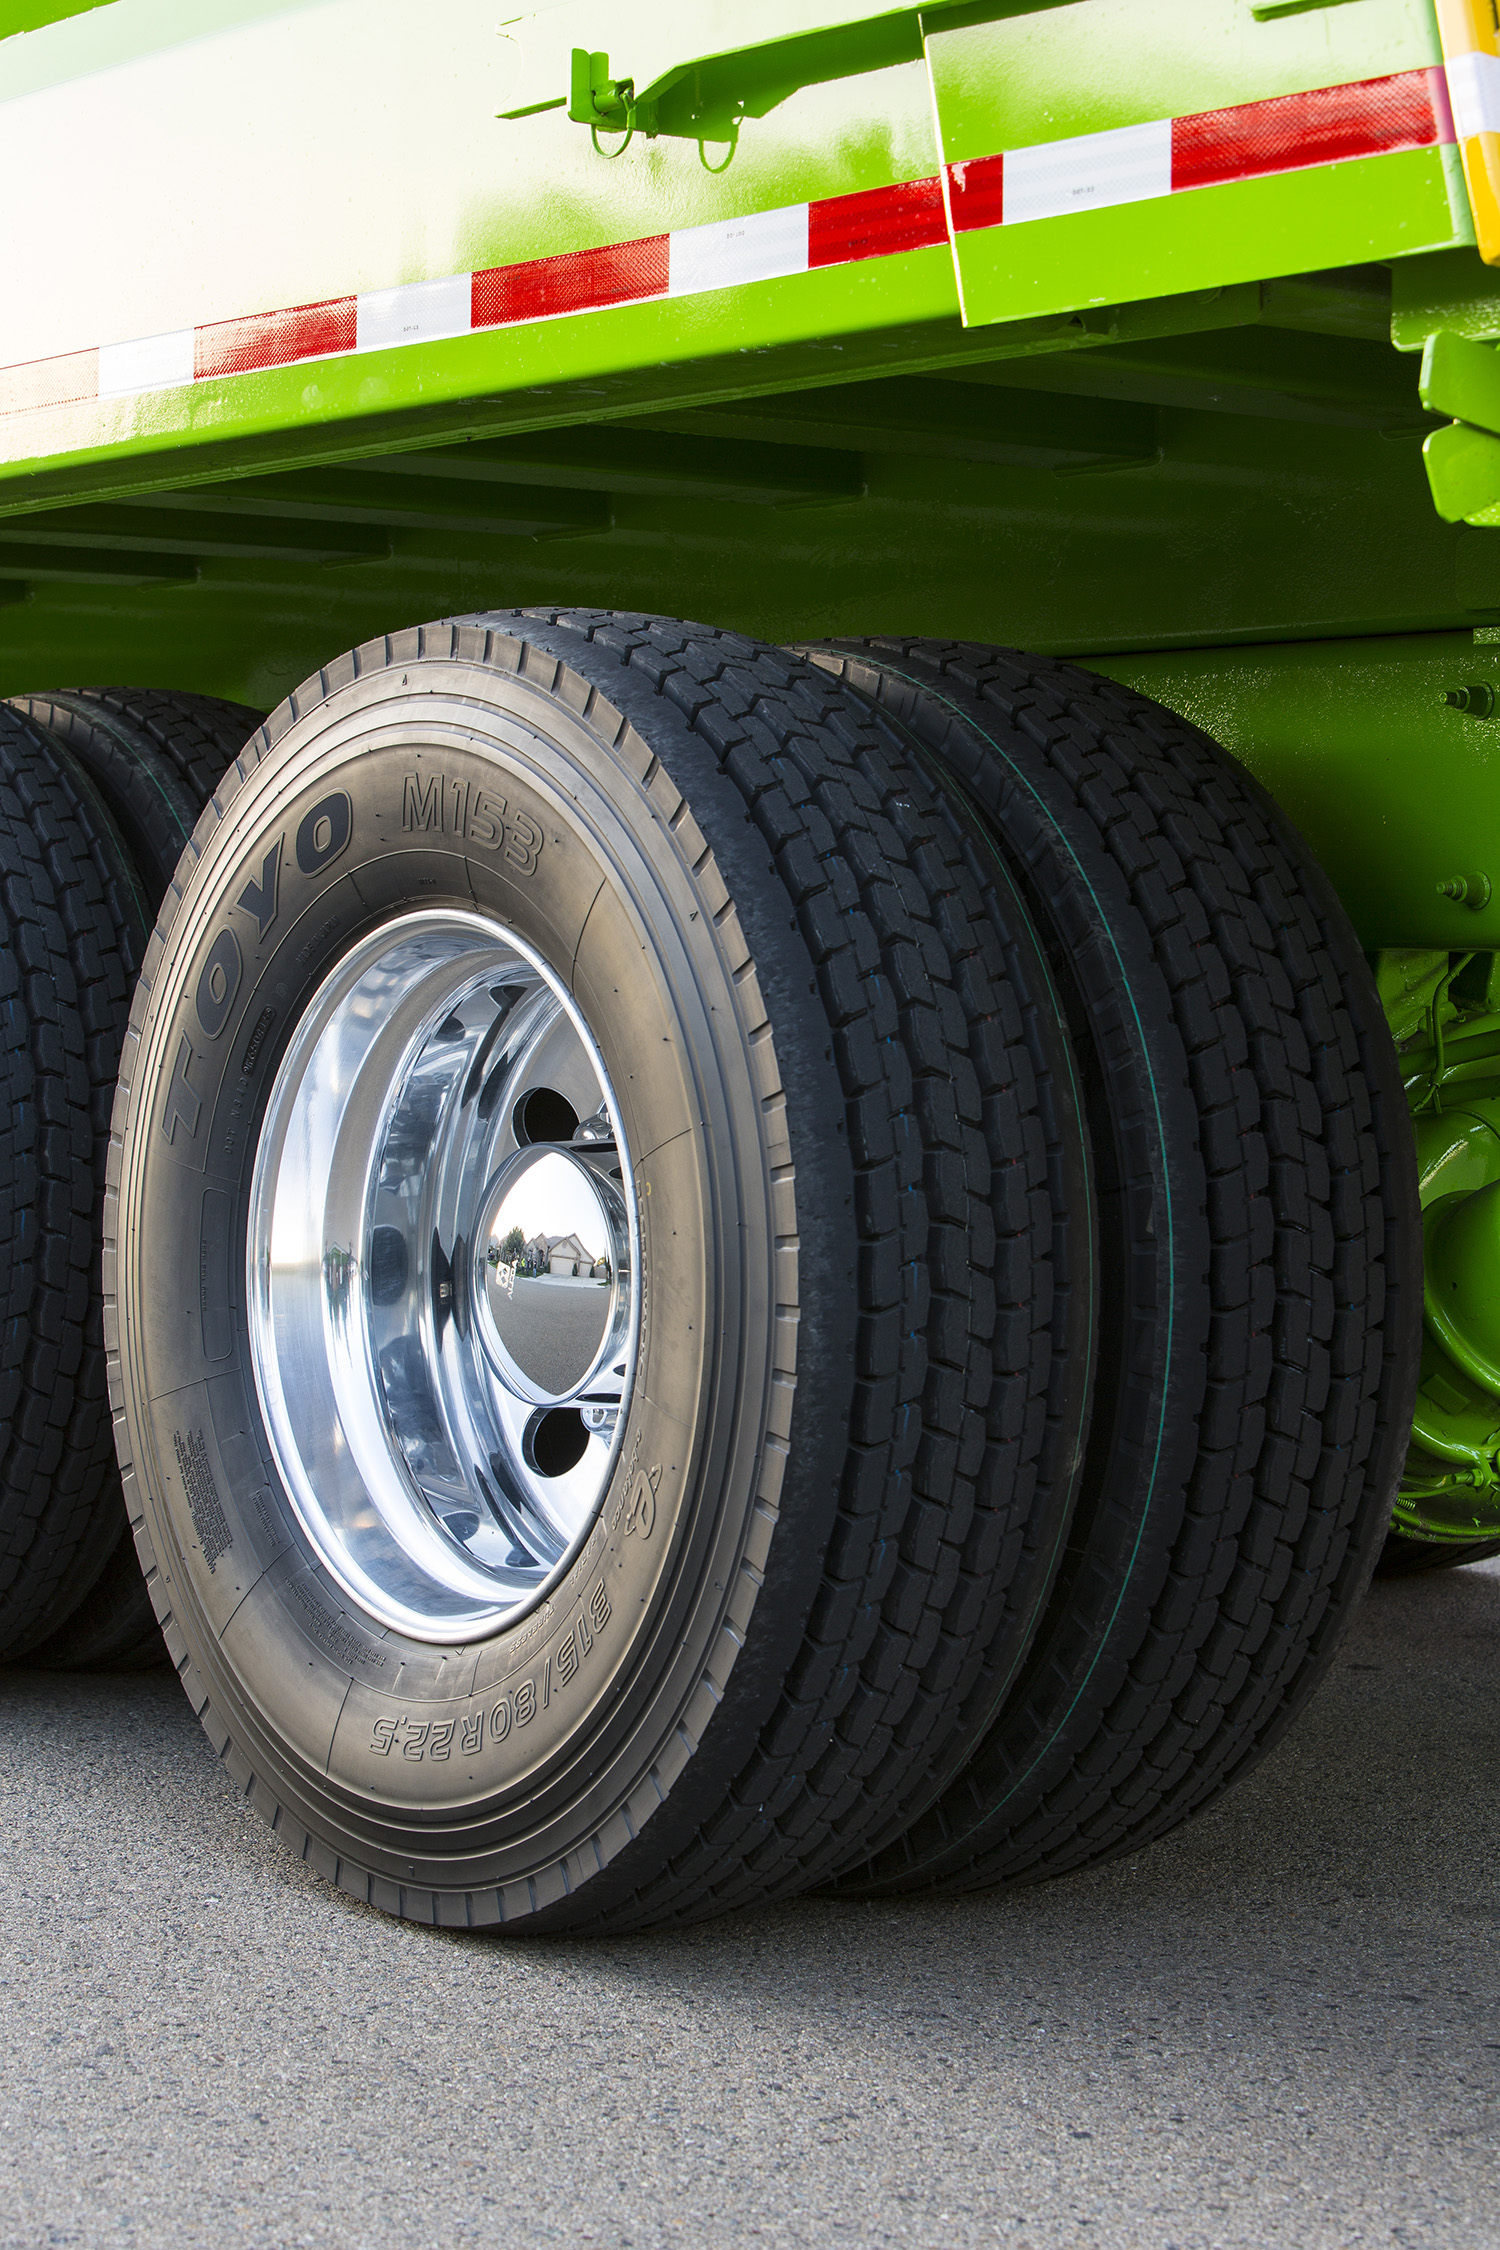 Toyo introduces heavy-duty steer tire